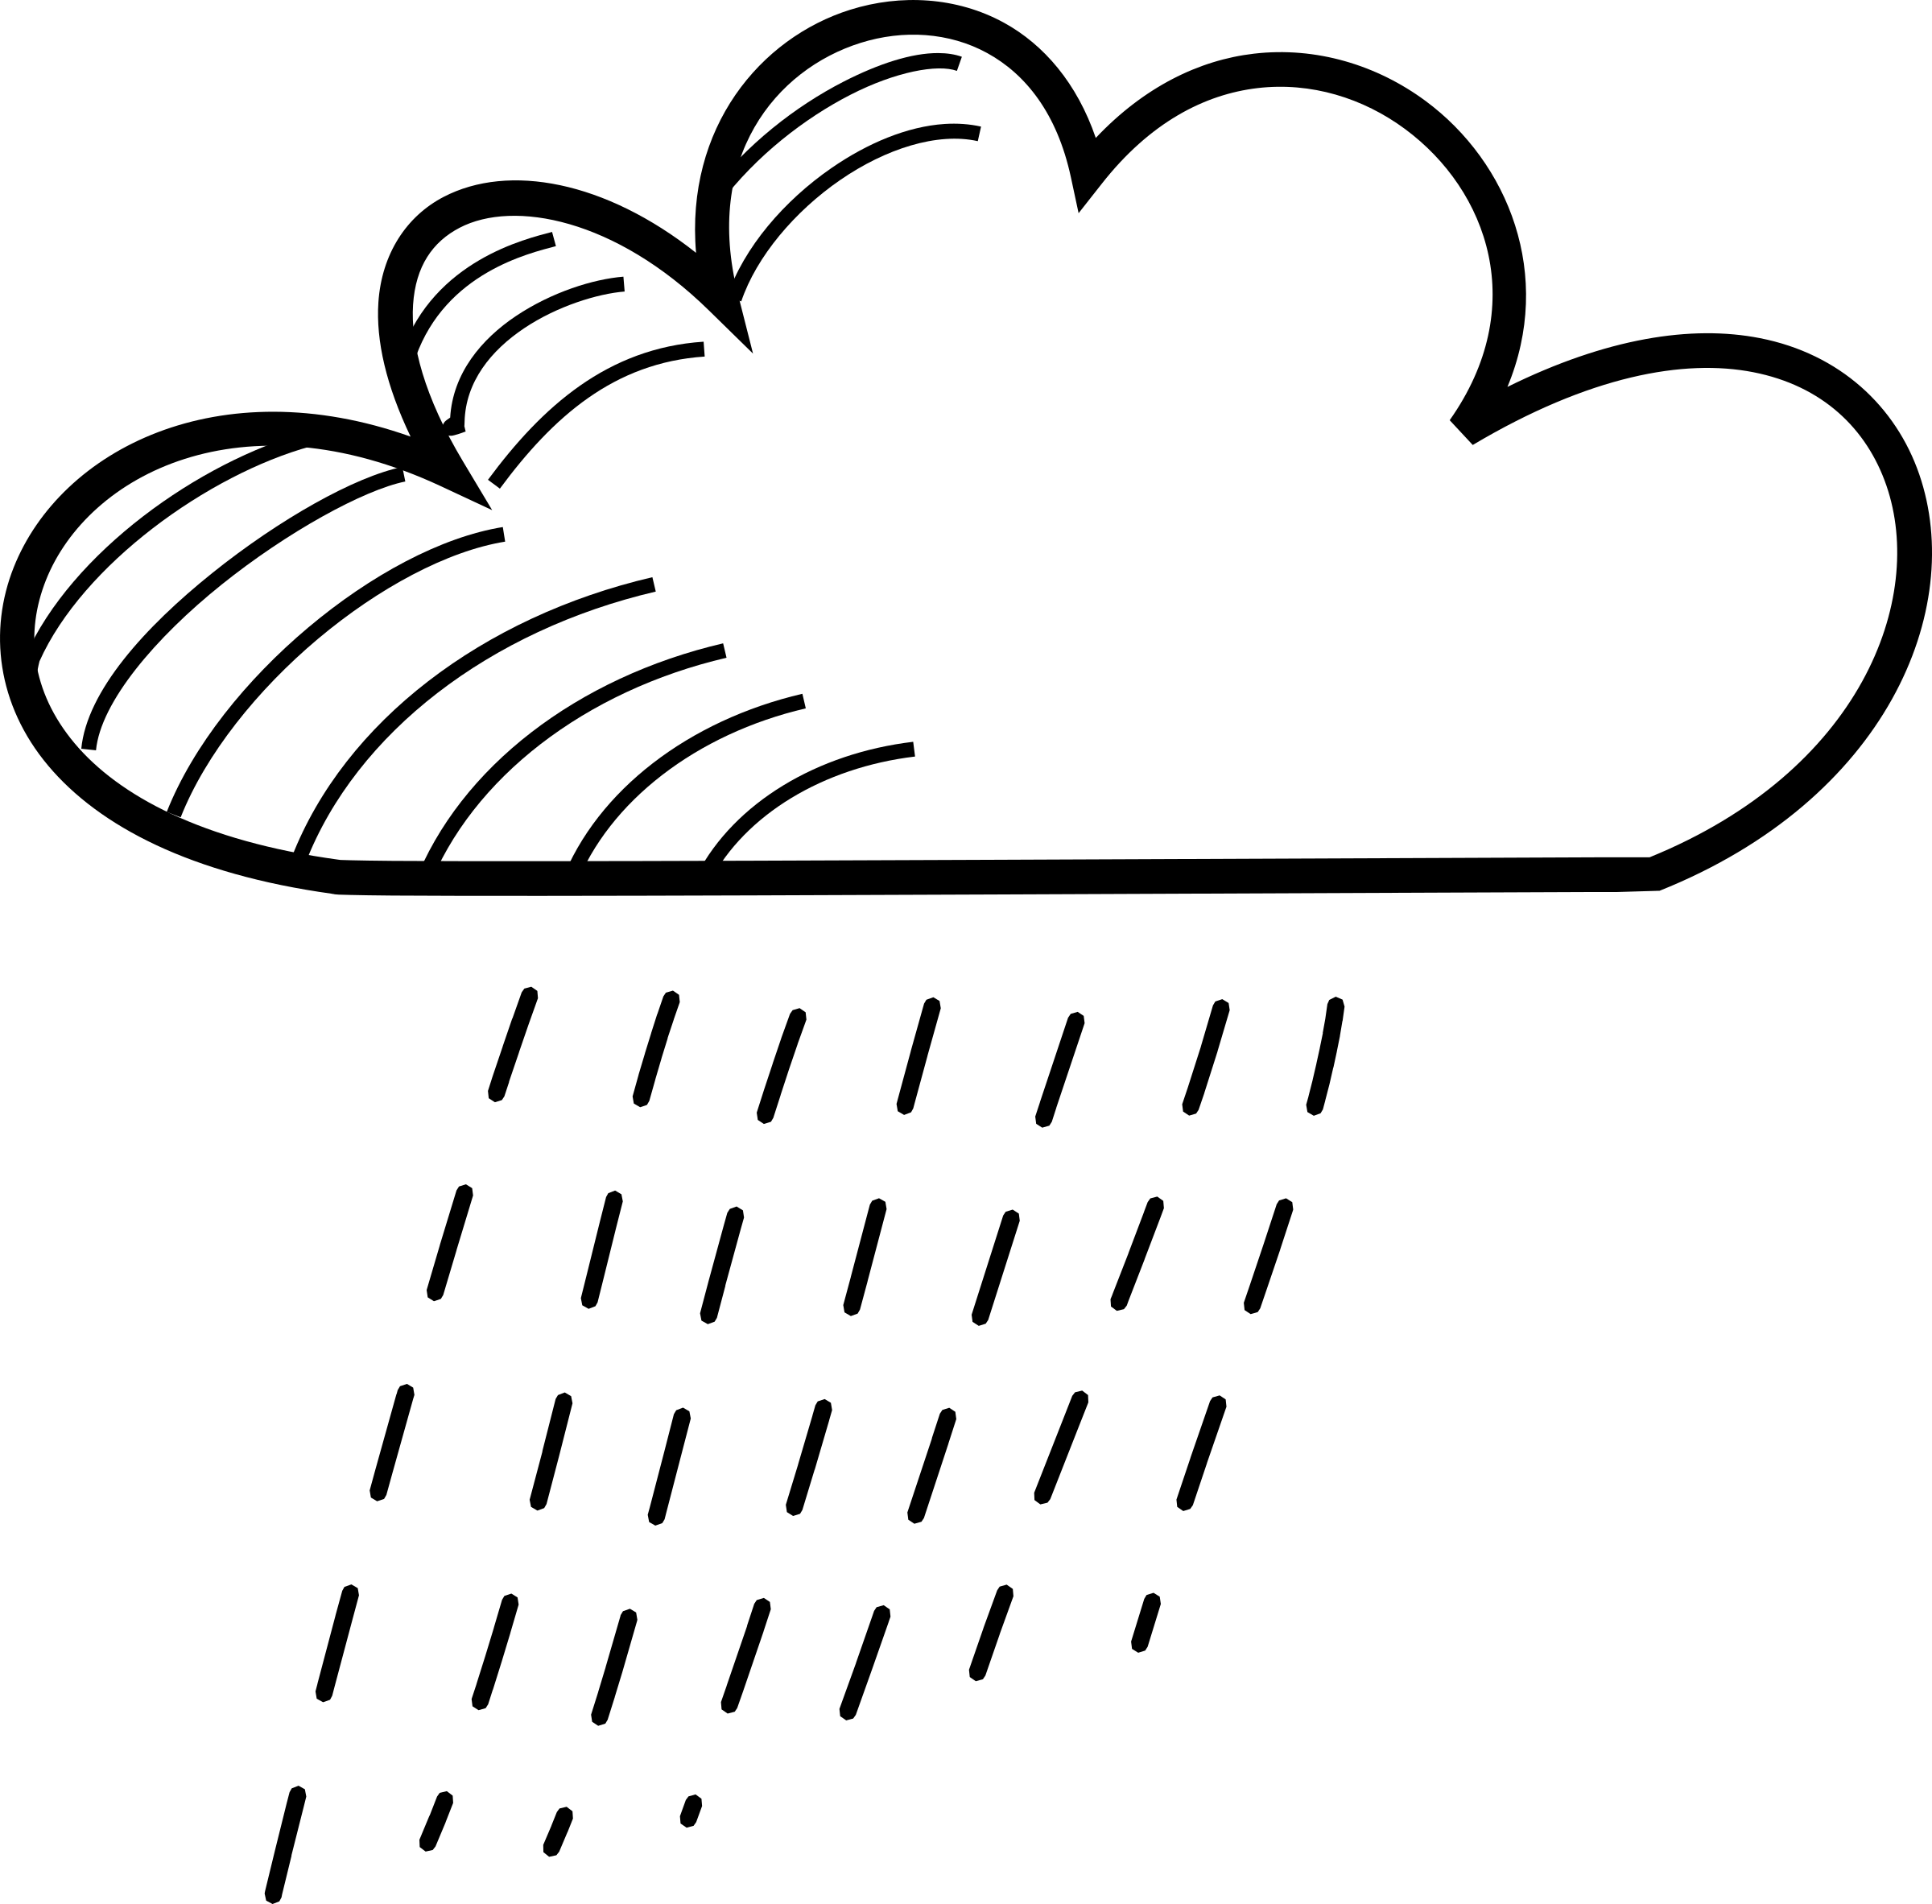 Rainy Stick Figure Cloud by uroesch